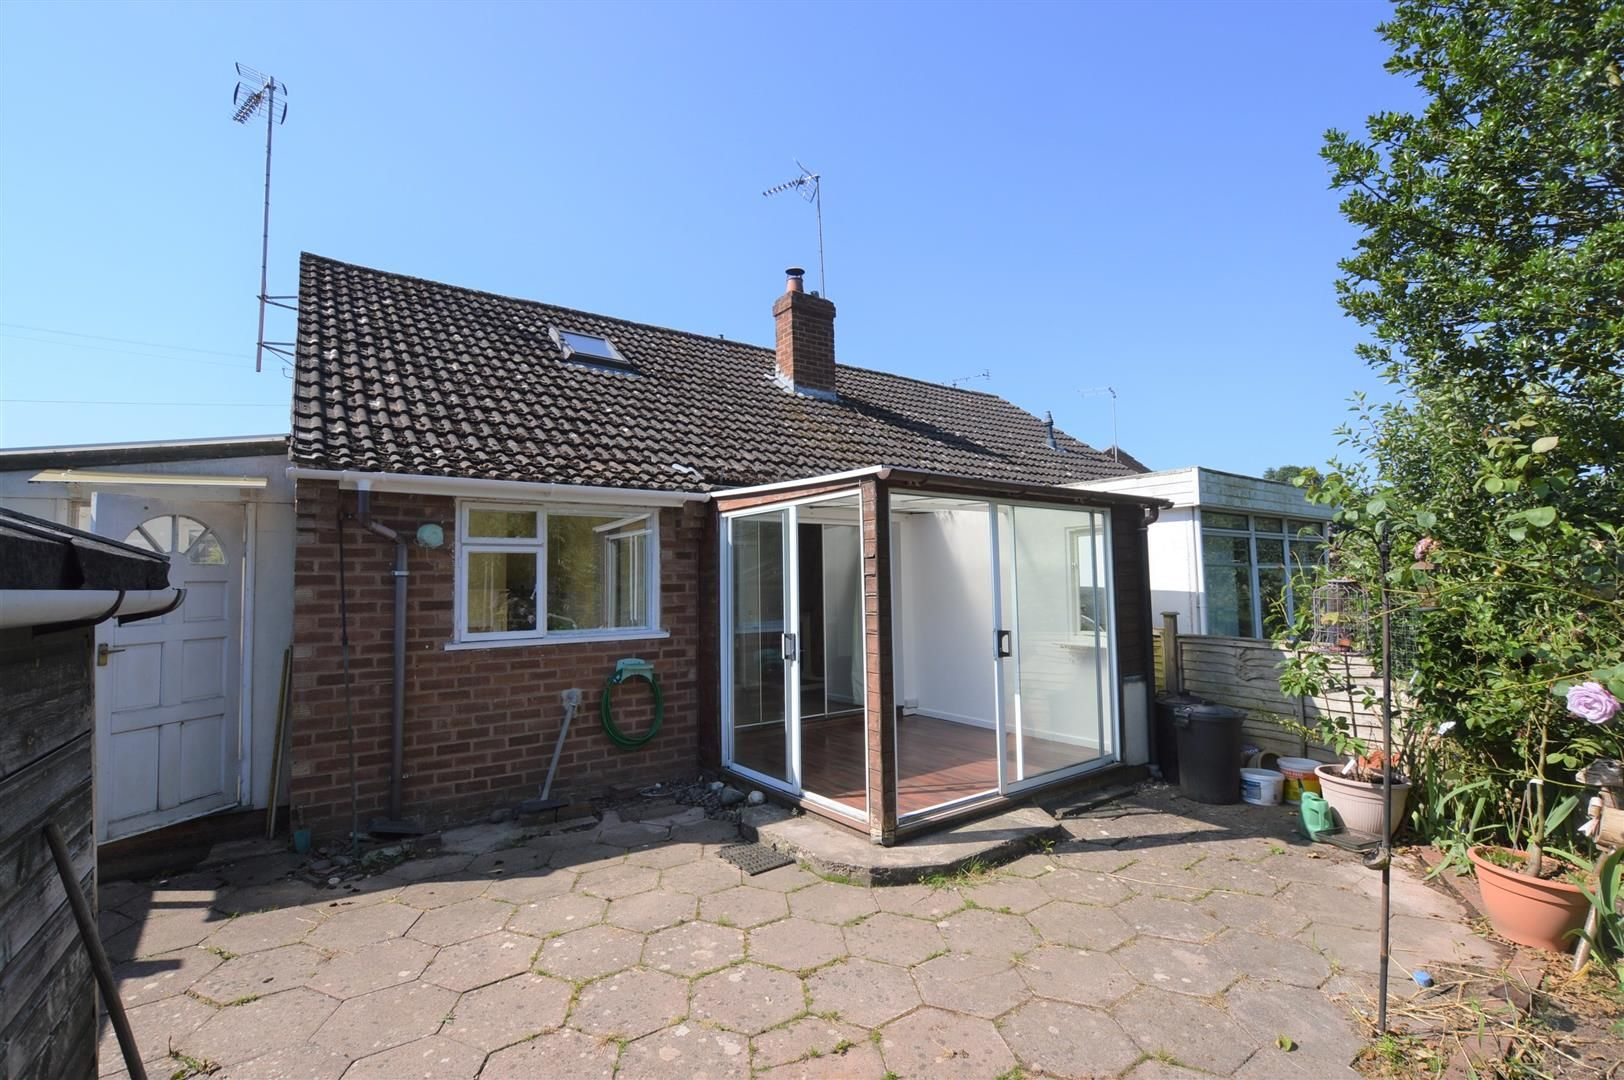 2 bed semi-detached bungalow for sale in Leominster 14